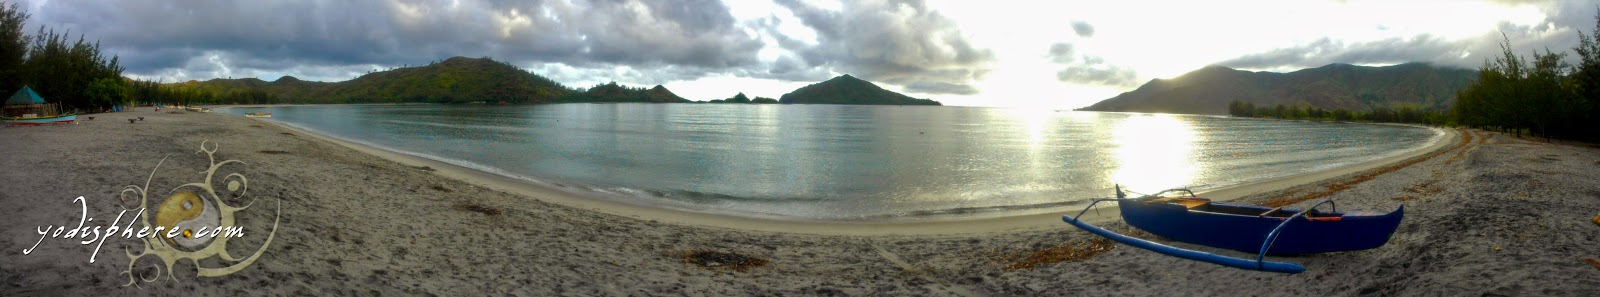 Panorama Shot of Silanguin Cove in Zambales before sunset